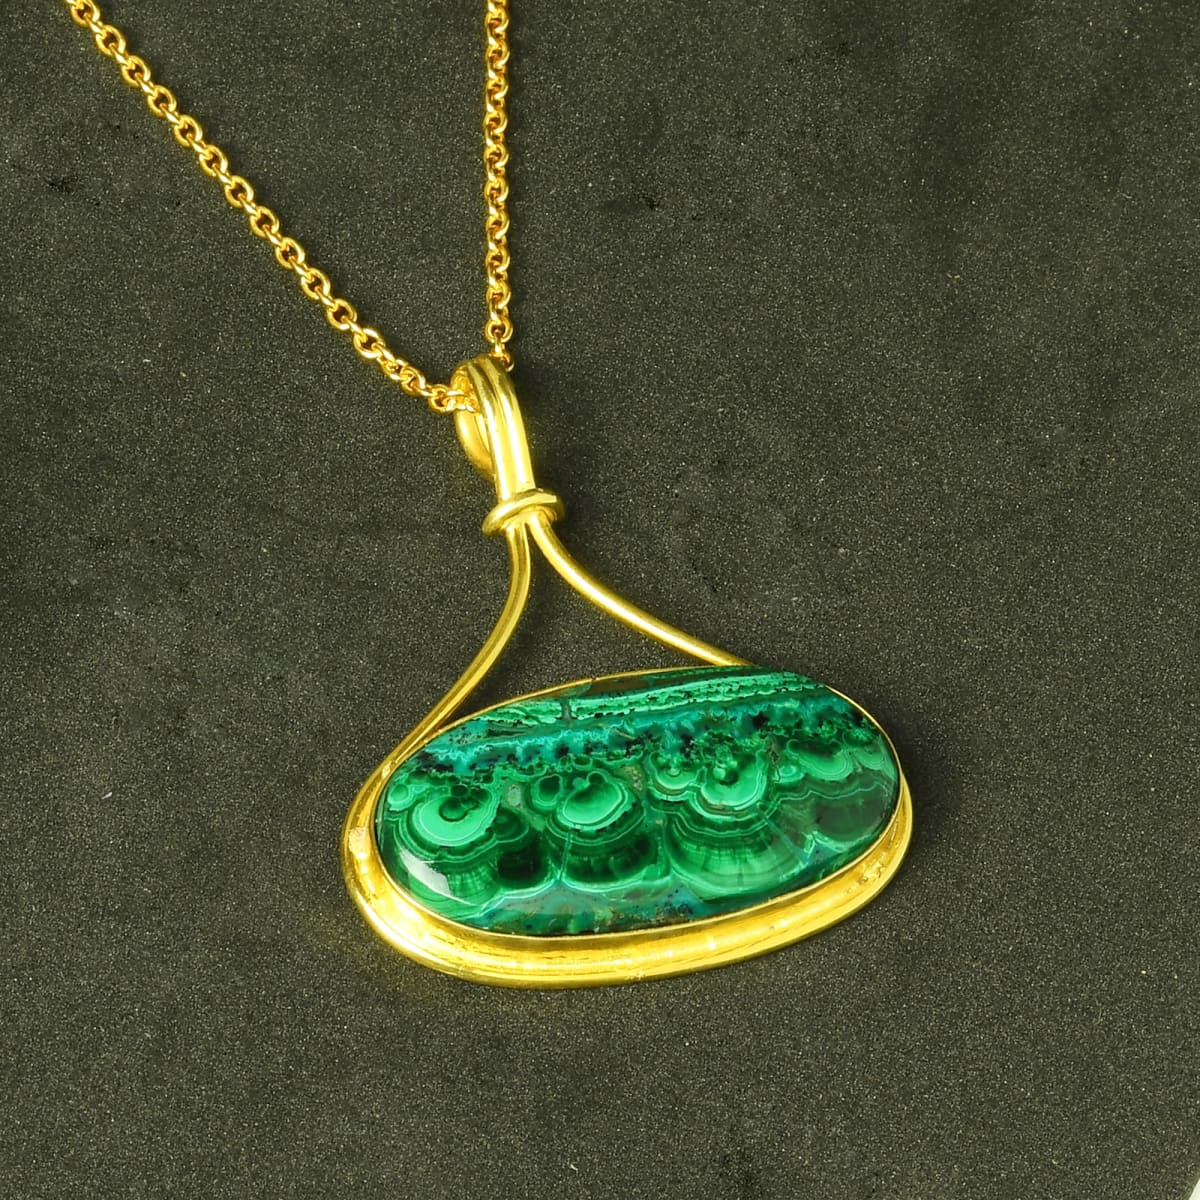 Natural Azurite Malachite Oval Cabochon Gemstone Amazing Statement Pendant - by Bhagat Jewels